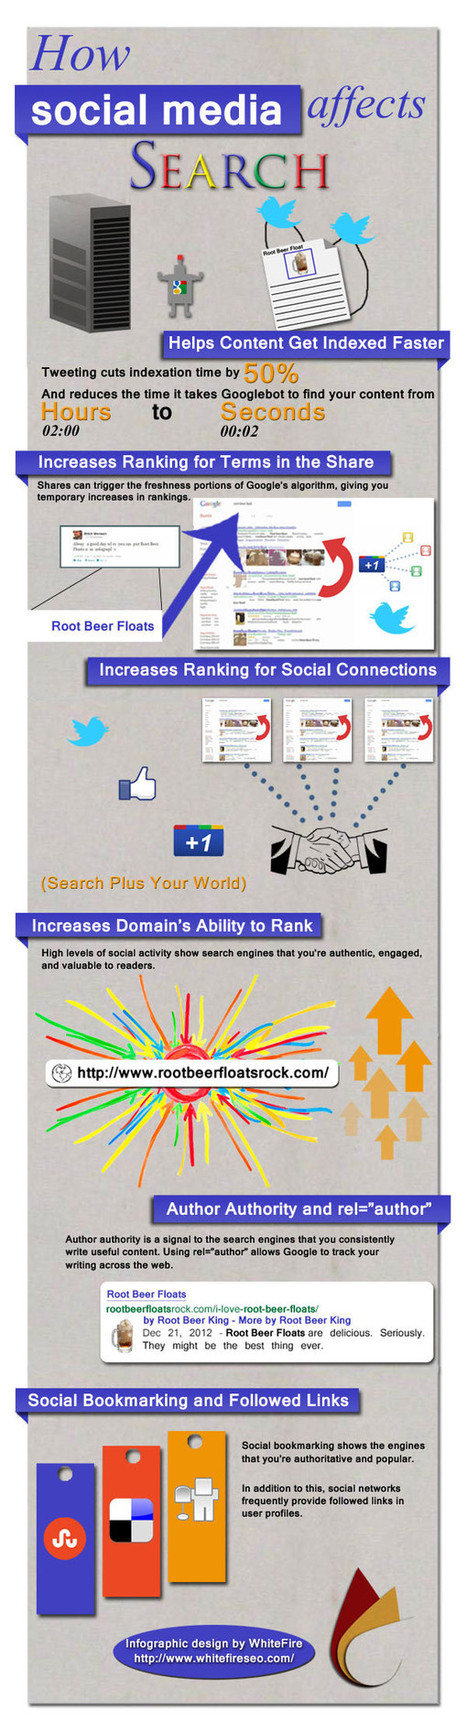 How Social Media Impacts SEO and Site Ranking: infographic | Search semantics | Scoop.it